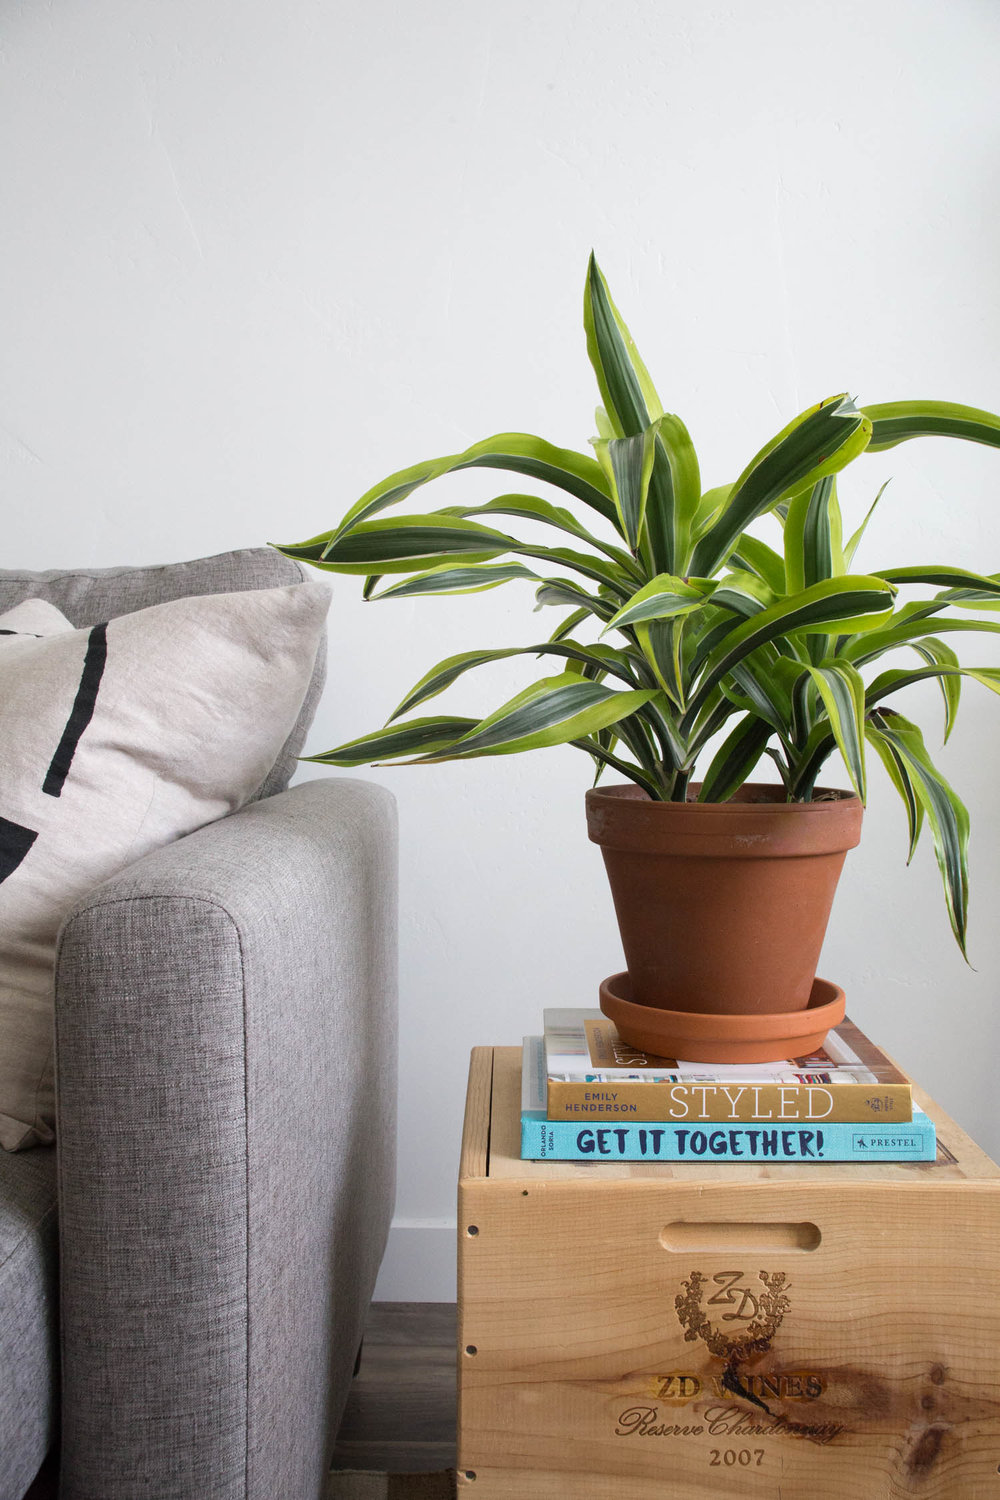 Bloomscape Delivers Plants To Your Door, and Teaches You How to Take Care of Them